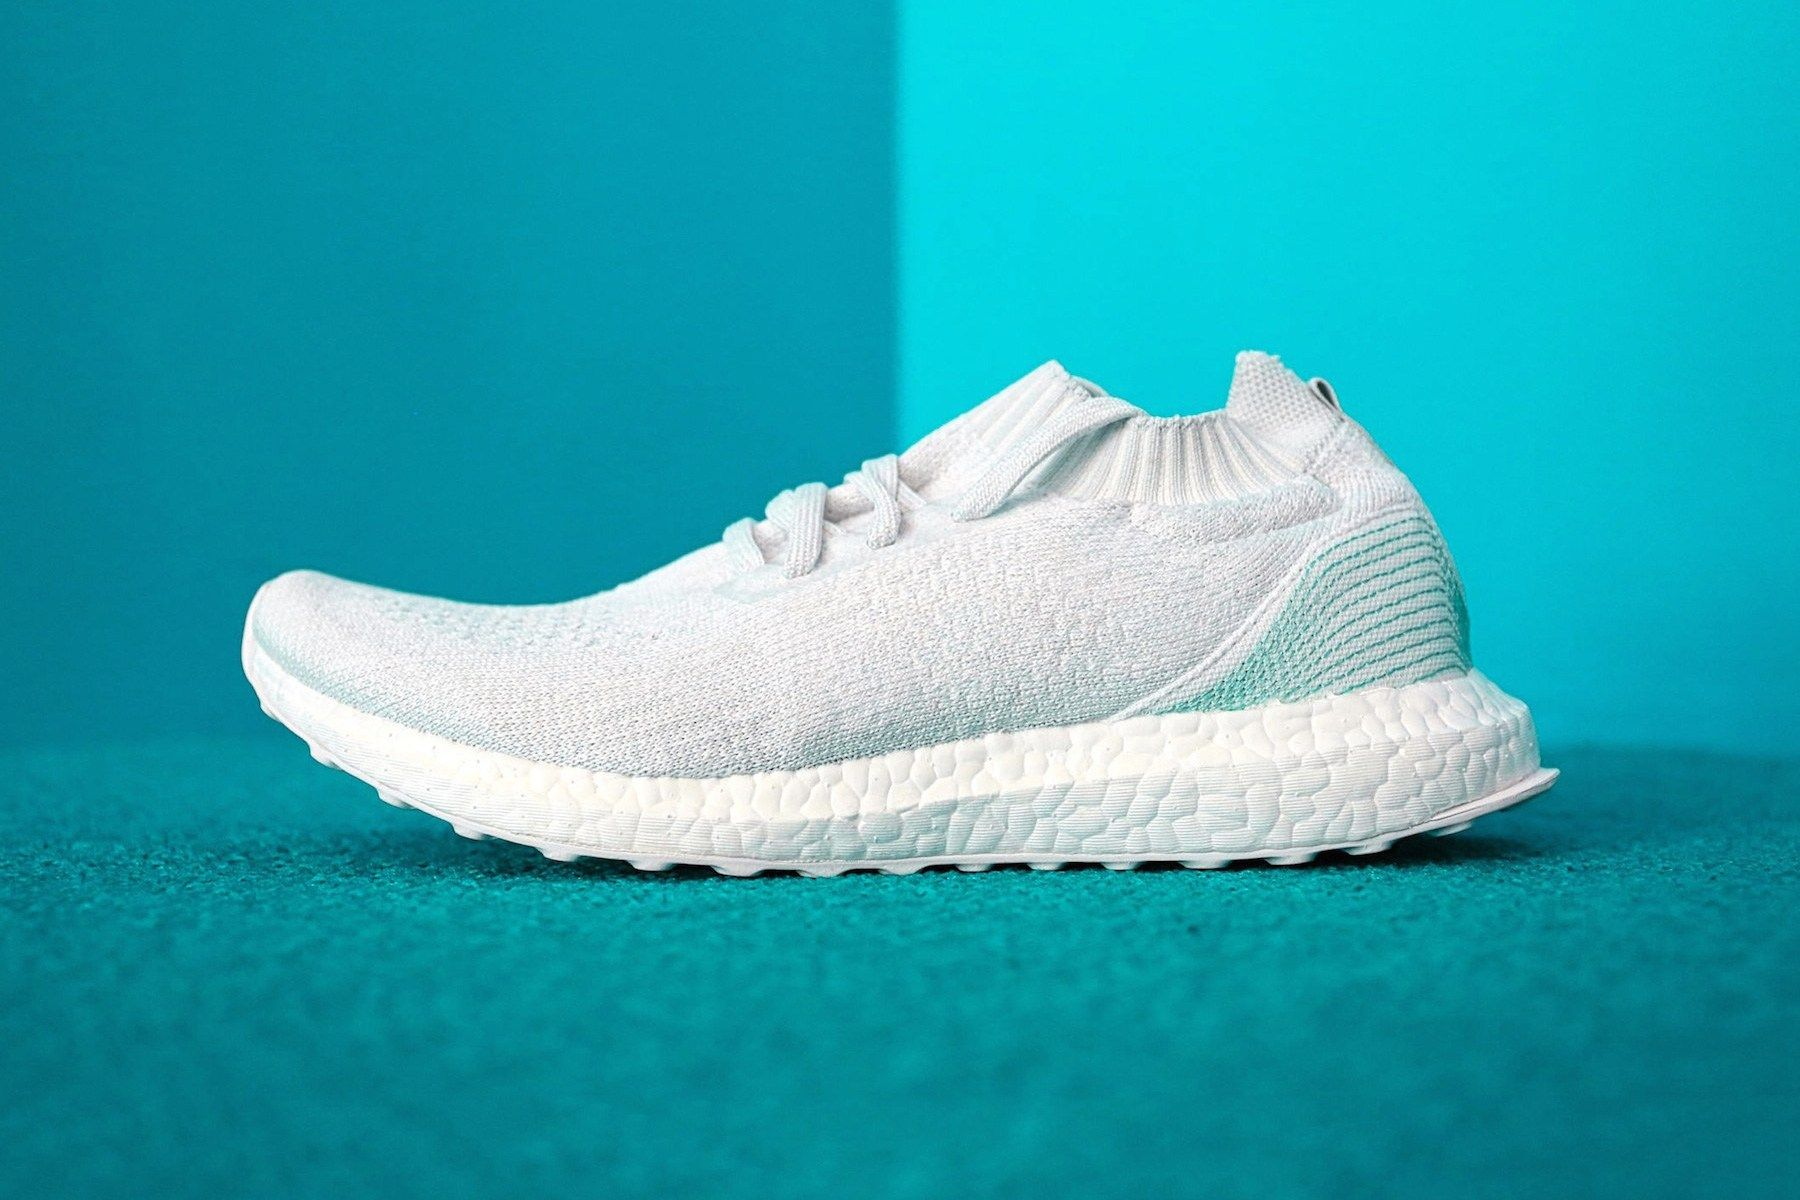 Parley X Adidas Ultra Boost Uncaged